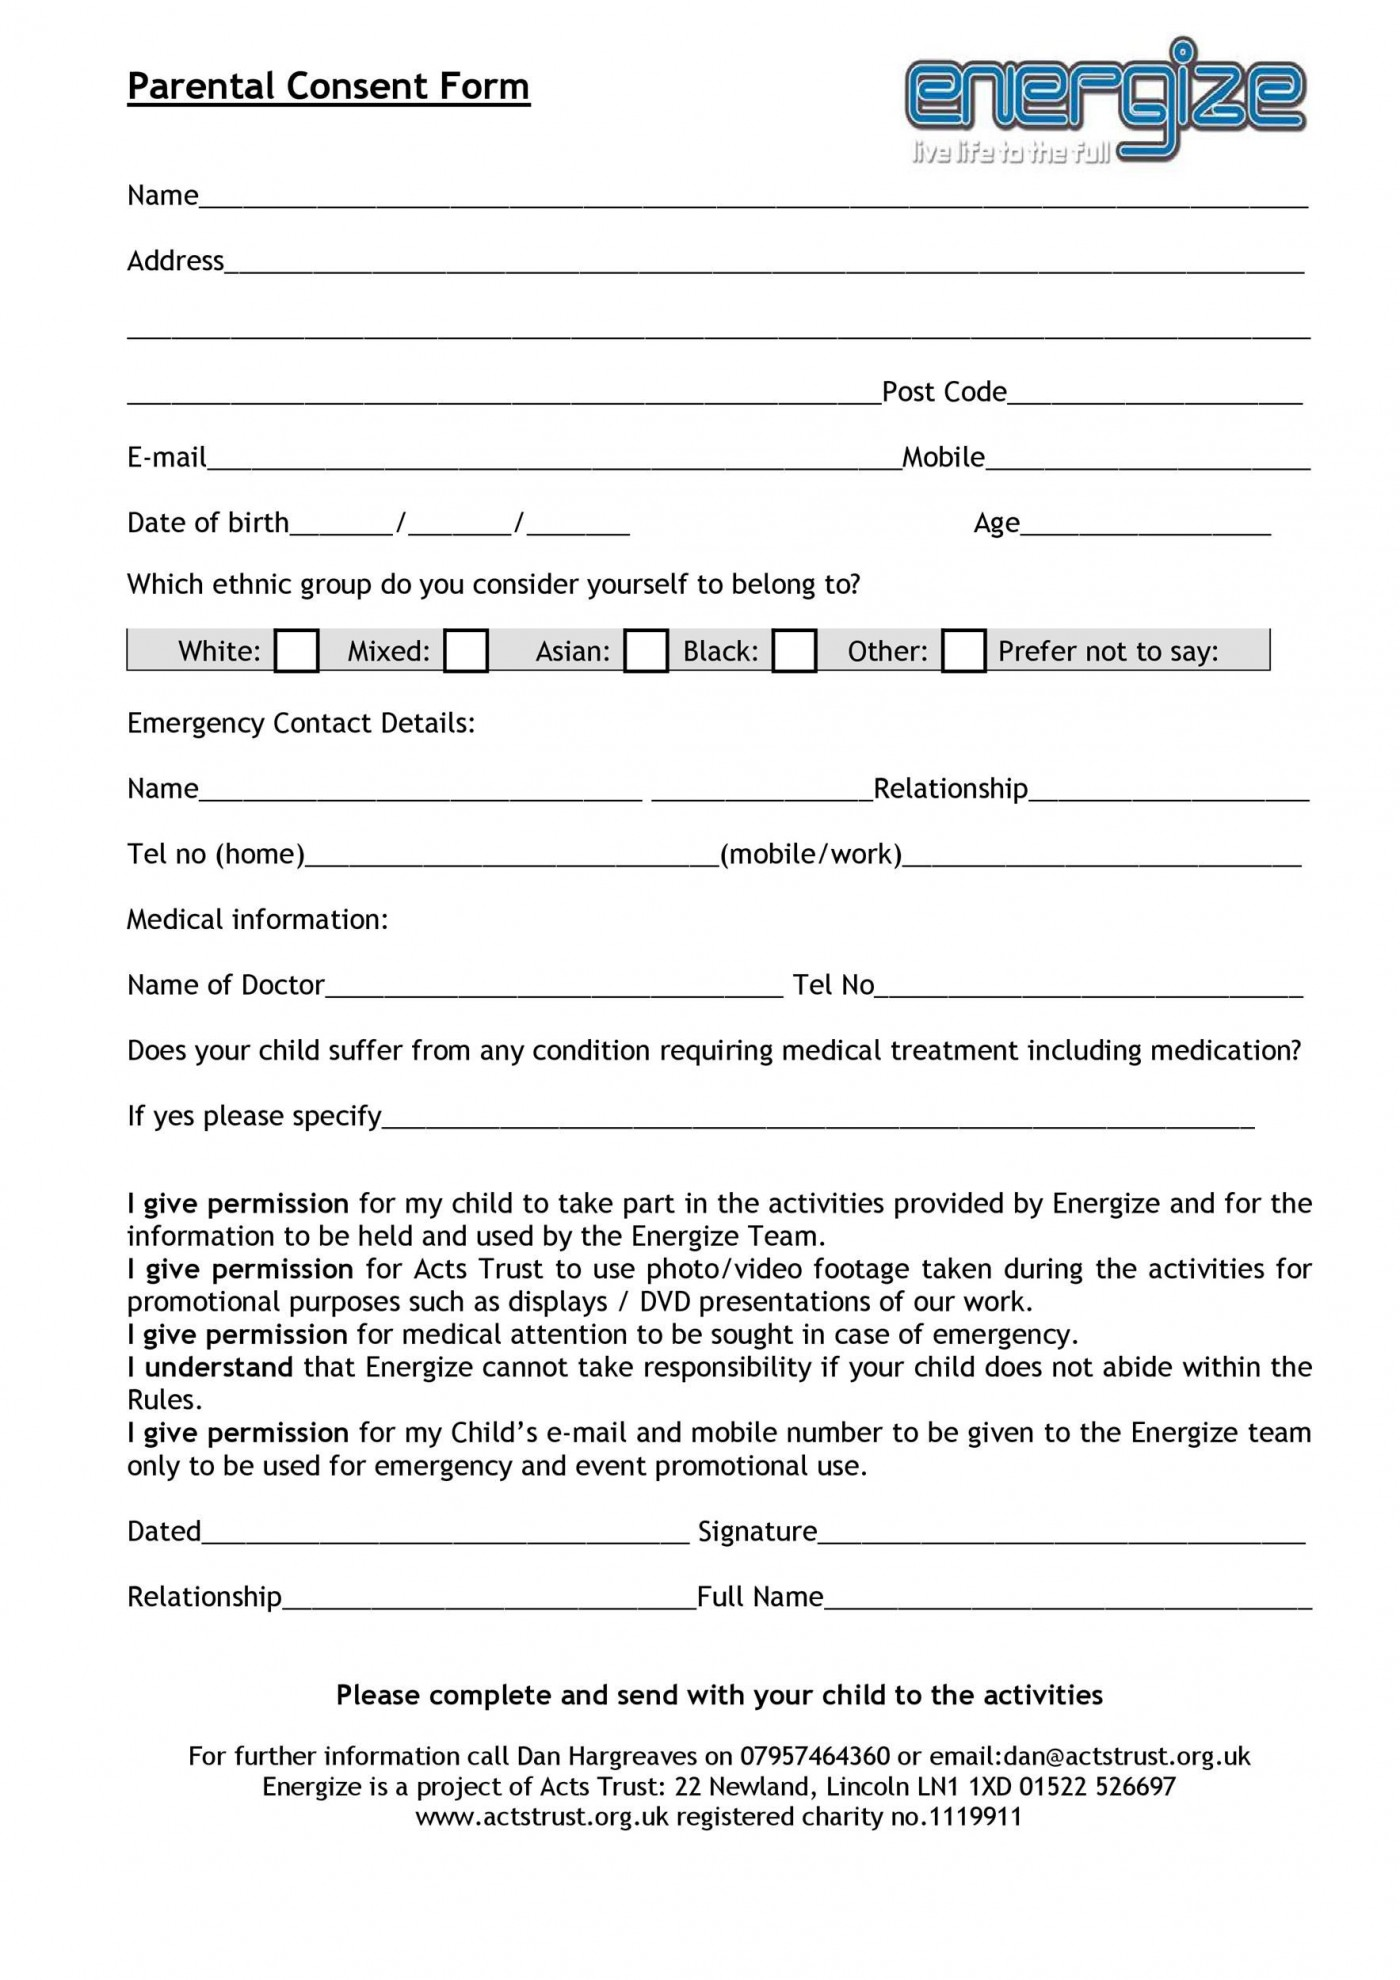 007 Wonderful Free Parental Medical Consent Form Template Design 1400